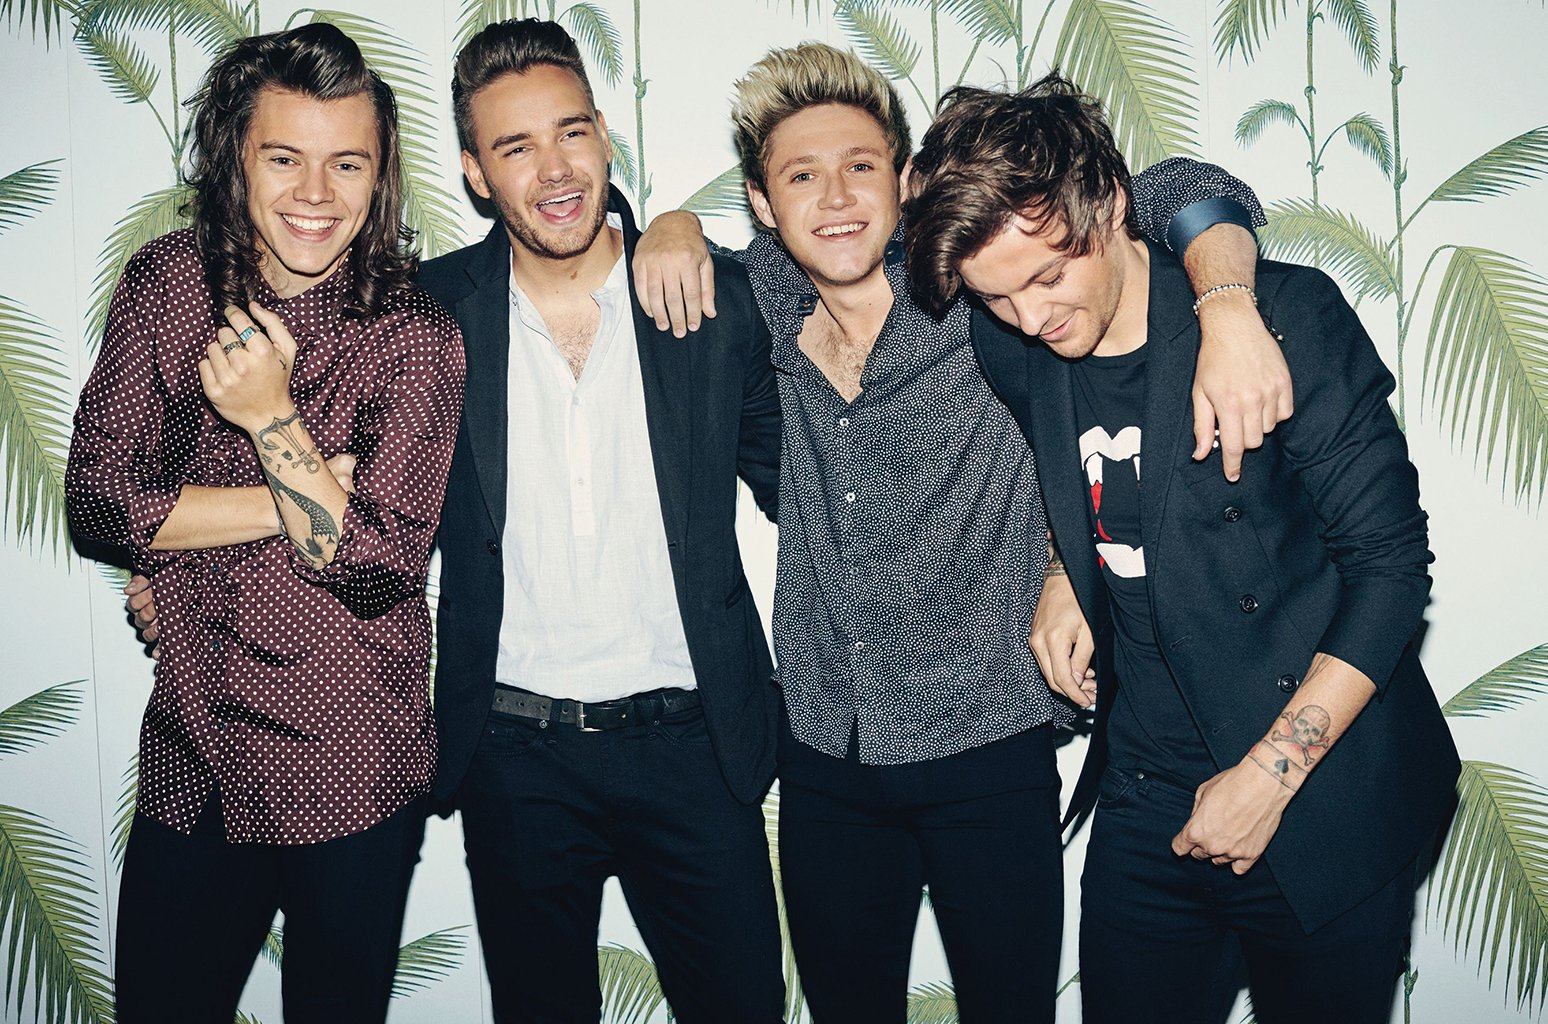 These are the 7 best @OneDirection songs remixed! https://t.co/npc5ZZAB4K https://t.co/JKEk0nUJNc